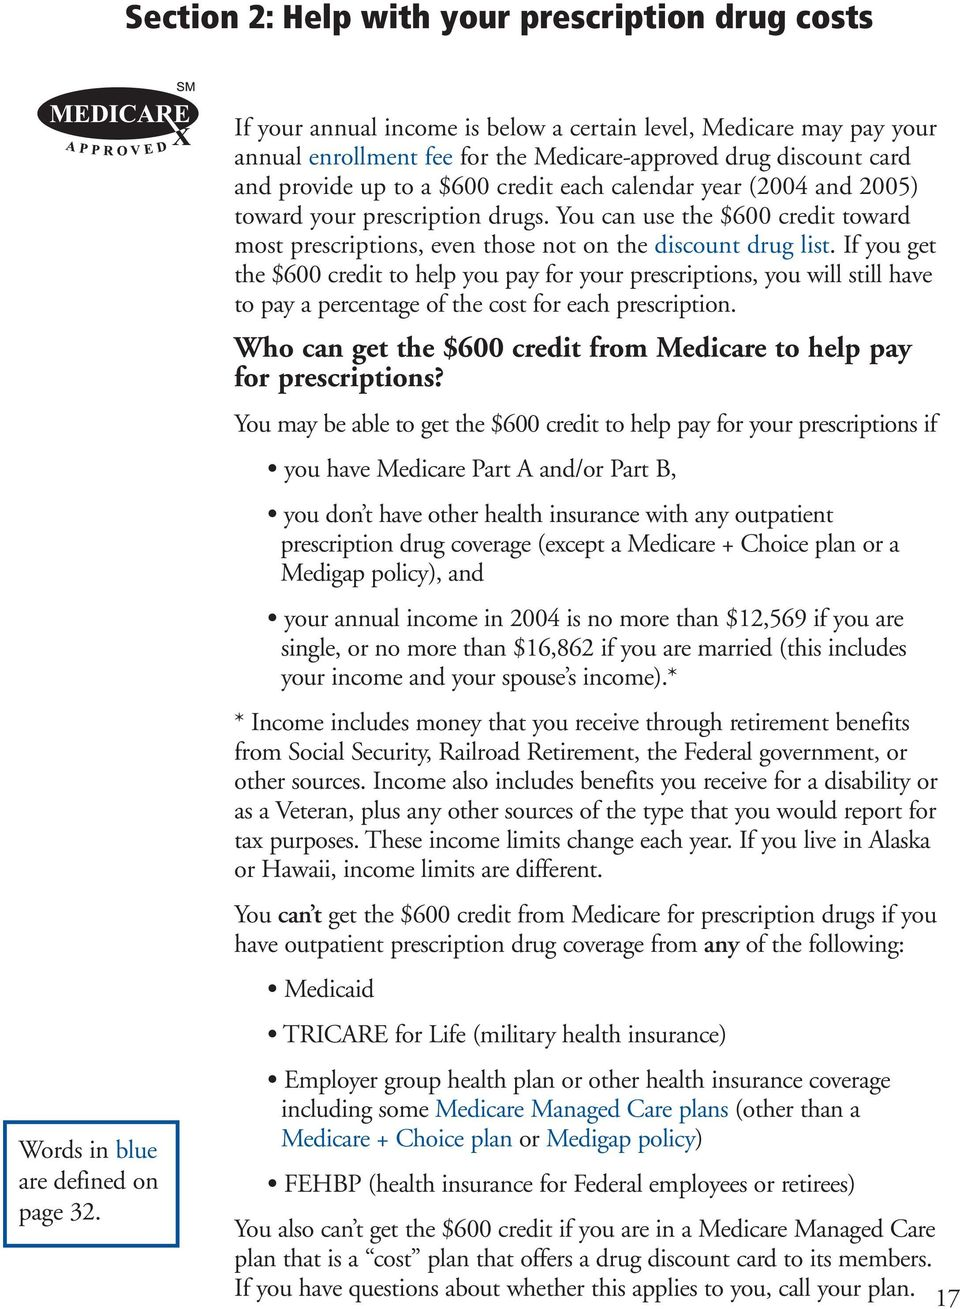 2005) toward your prescription drugs. You can use the $600 credit toward most prescriptions, even those not on the discount drug list.